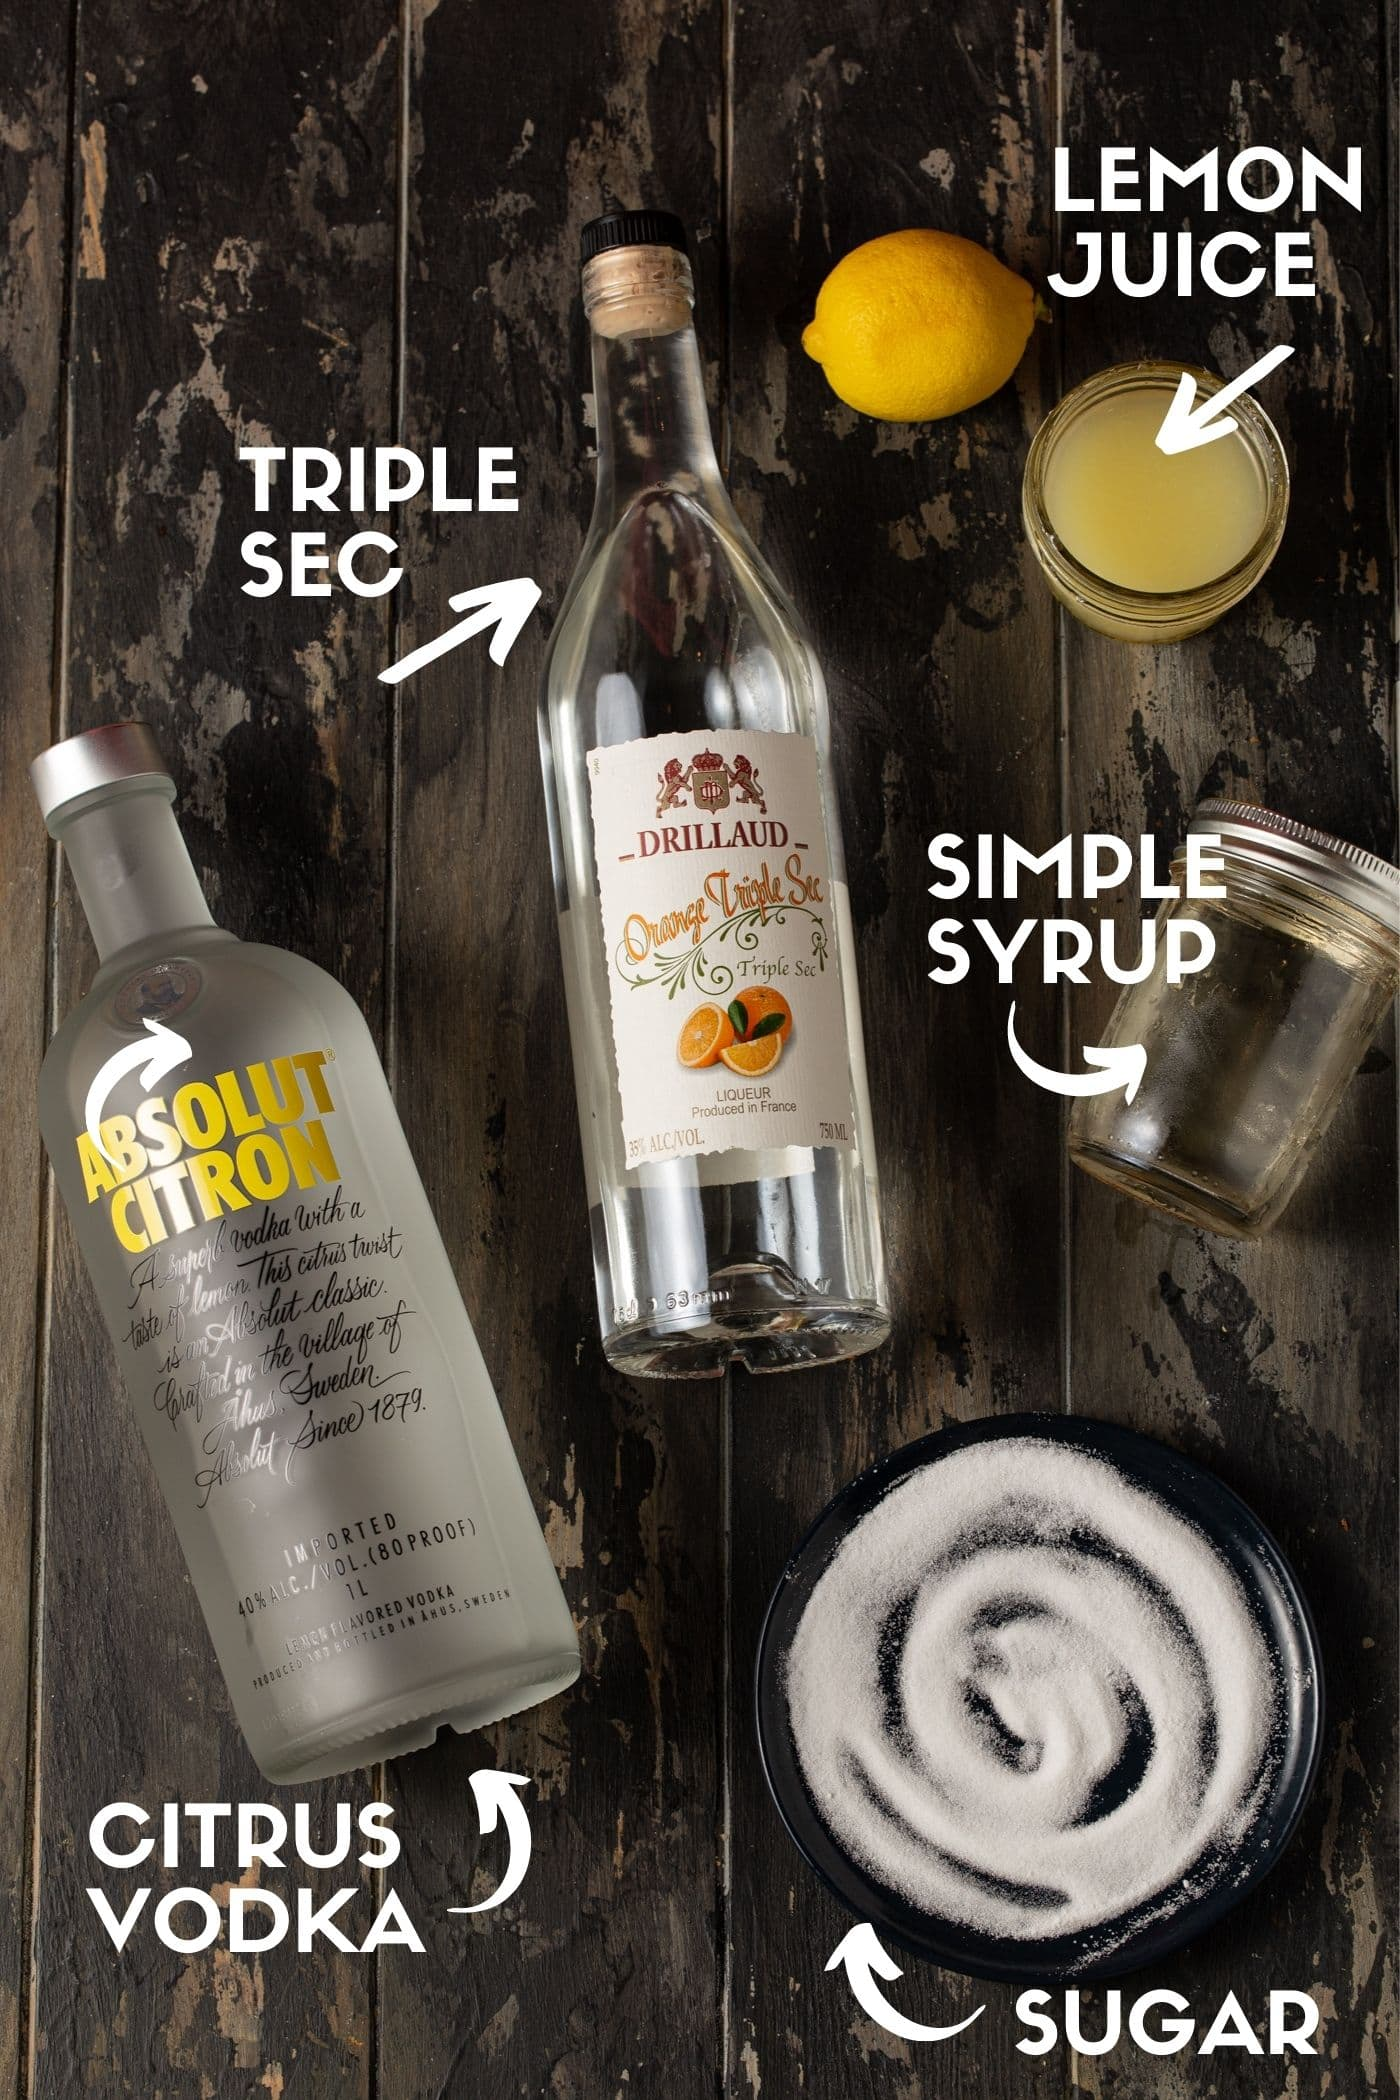 absolut citron vodka bottle, triple sec bottle, small jar filled with lemon juice, mason jar of simple syrup and small black plate topped with superfine sugar on a dark background.